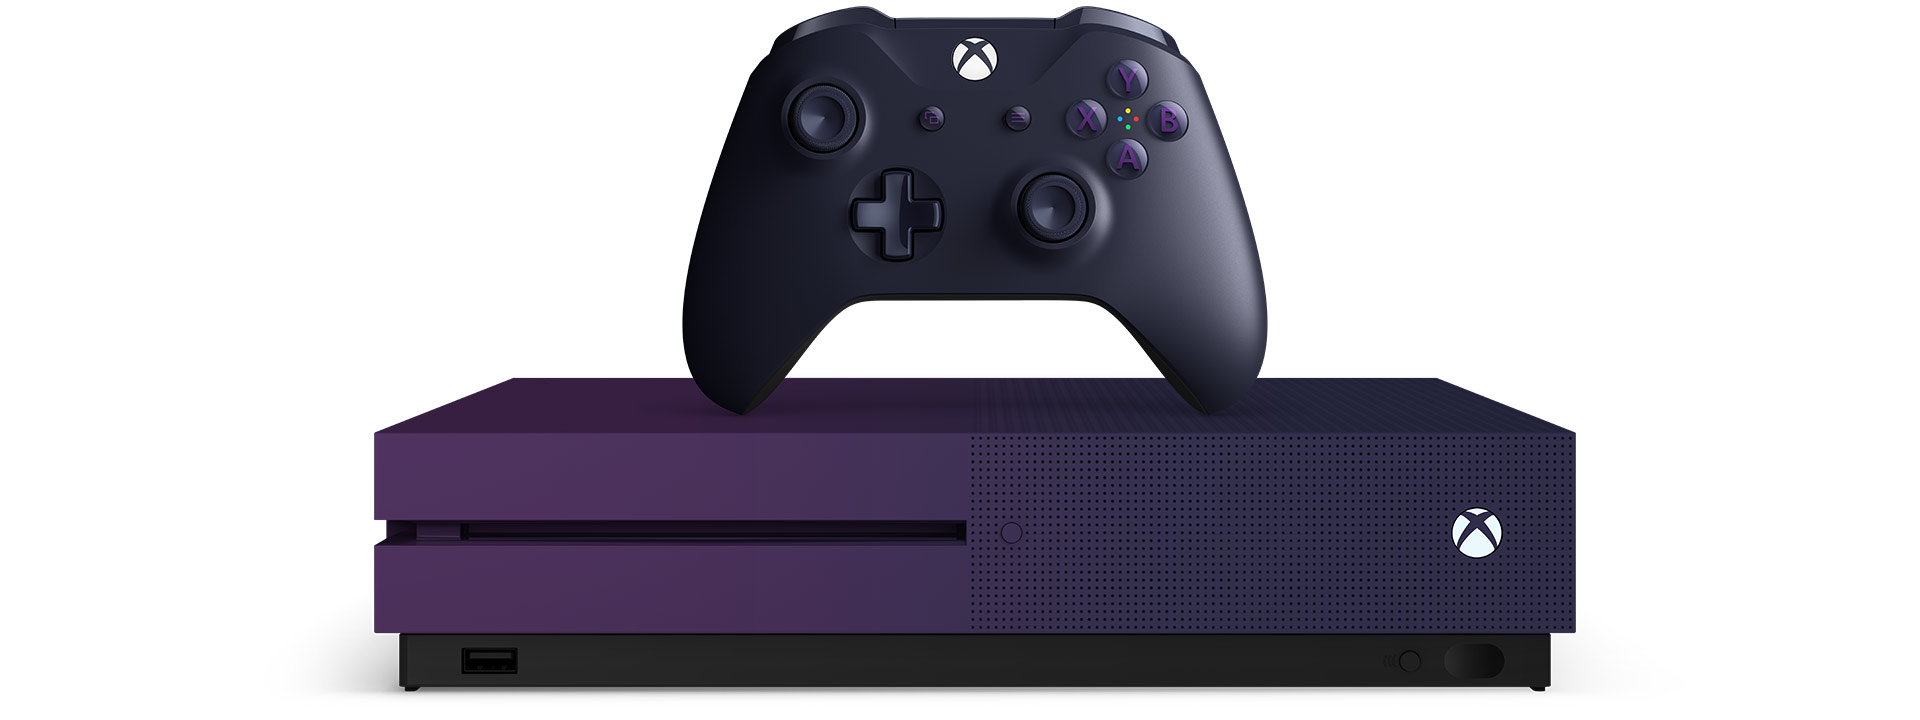 Gradient purple Xbox One S console with an Xbox wireless controller